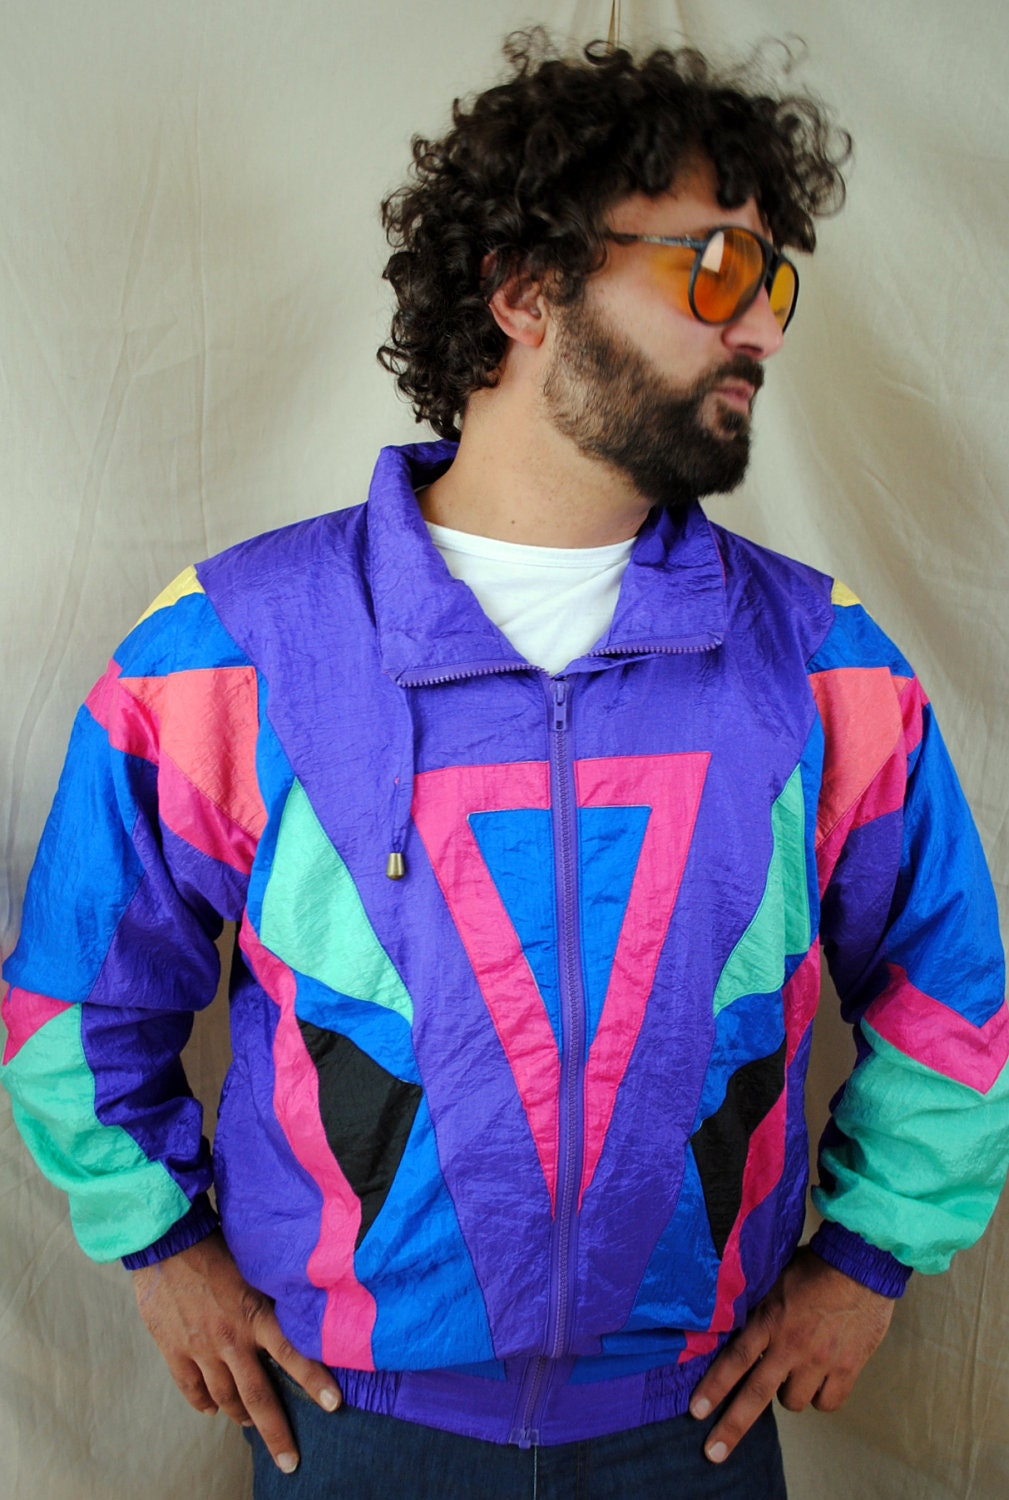 80s Vintage Clothing In The Uk Just Got Easier: Vintage 80s Neon Jacket WIndbreaker